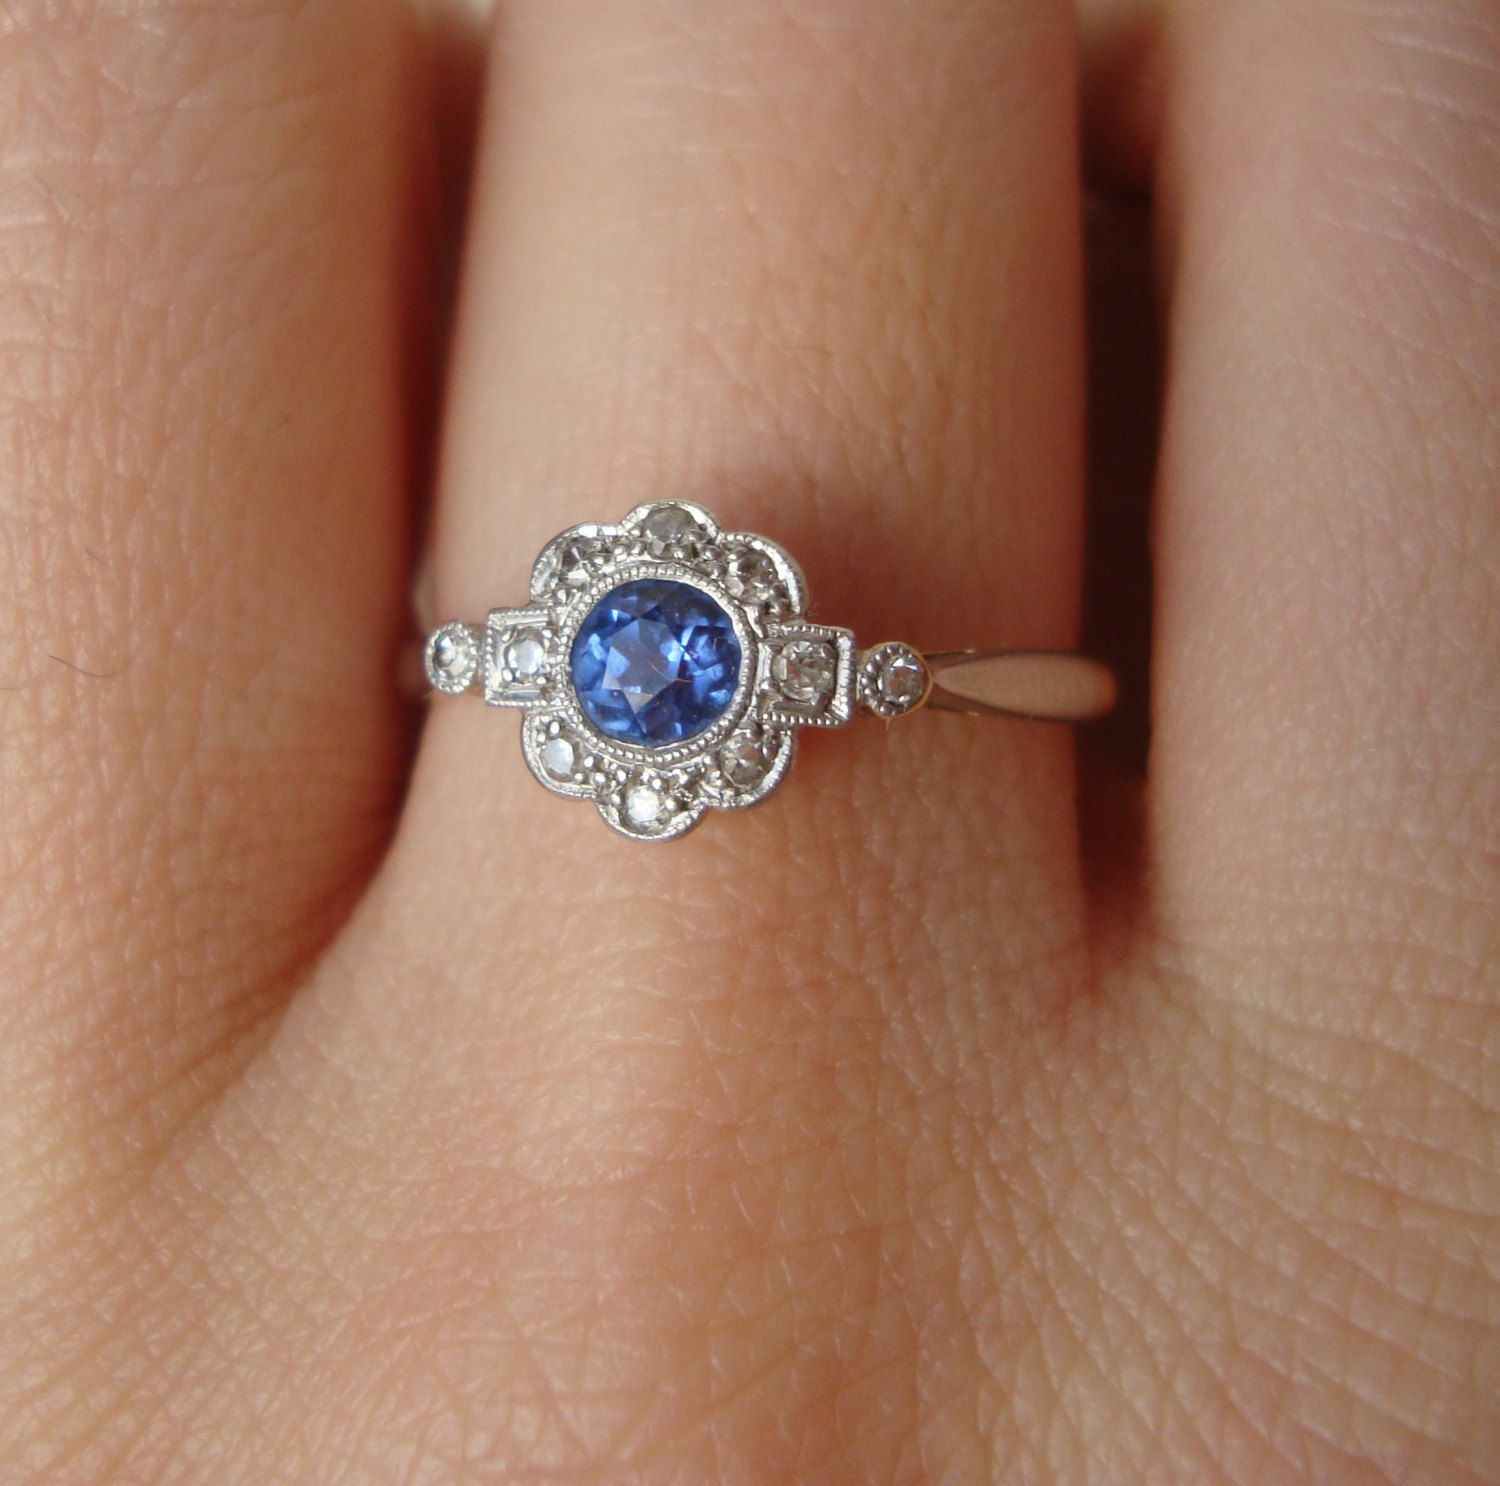 editor the blue trio dark pic tiffany jewellery hirsh ct ideas ring tw image files and rings kay of styles lavender astonishing sapphire diamondswhite amazing engagement gold